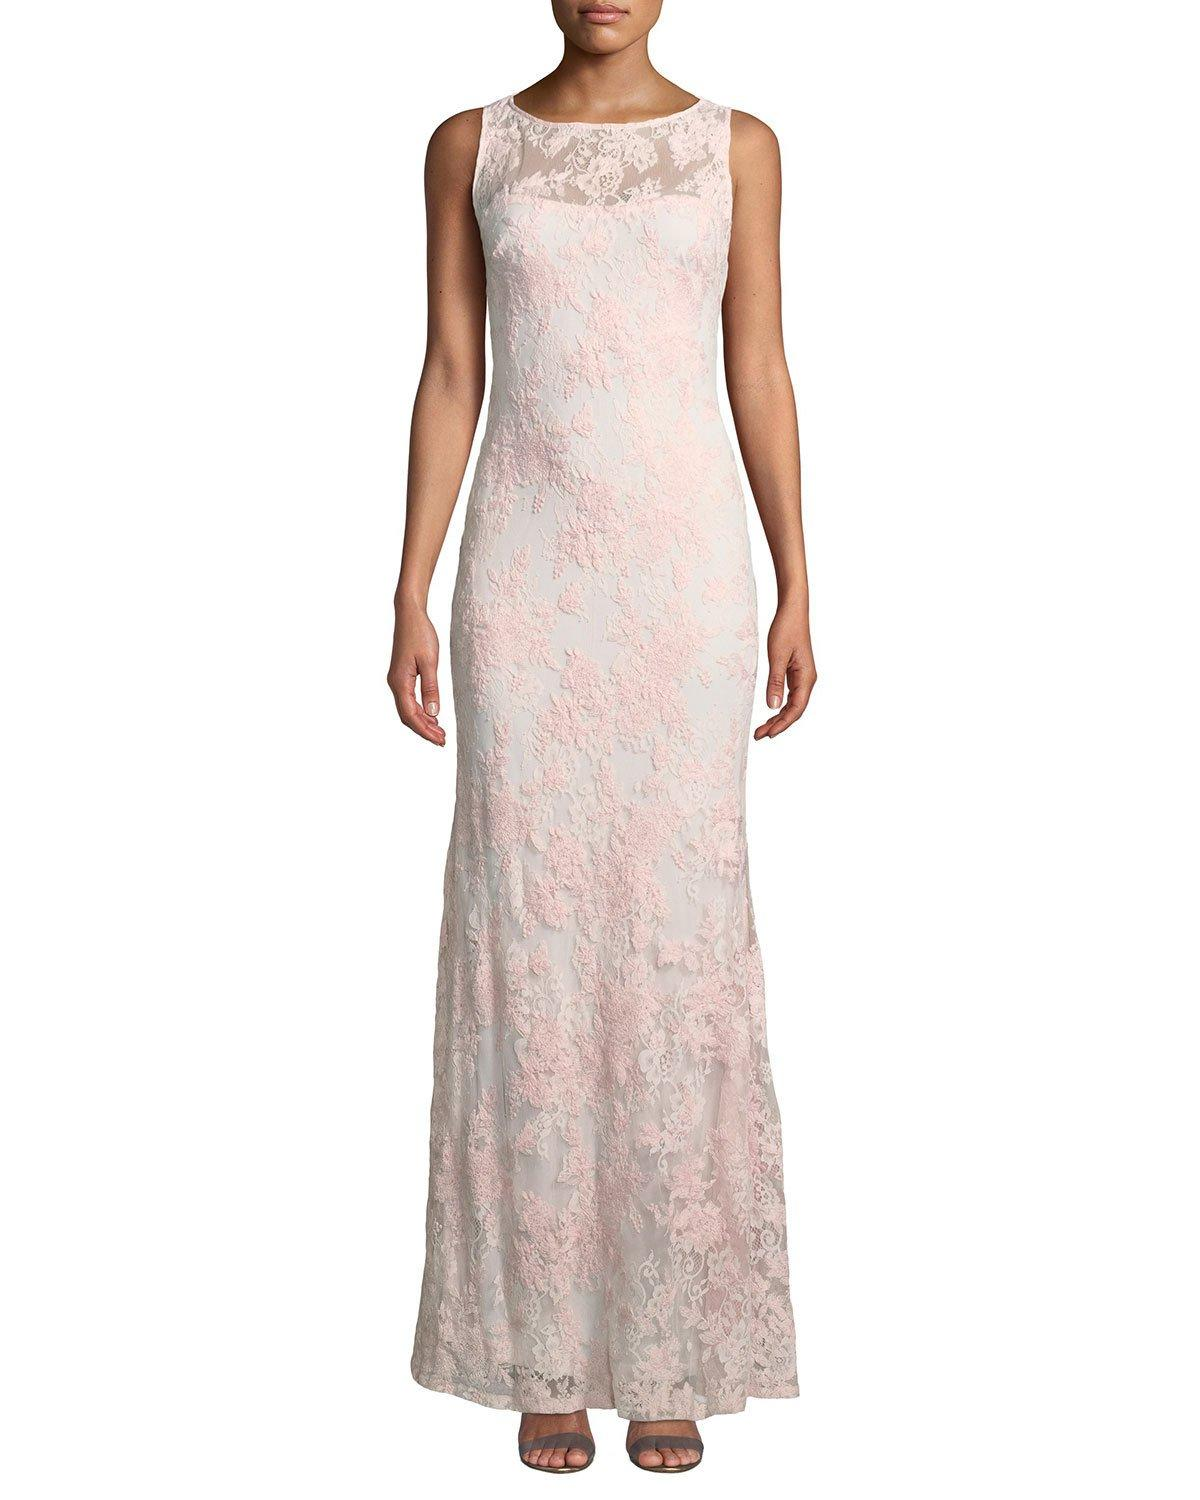 Karl Lagerfeld Sleeveless Lace Illusion Mermaid Gown In Rose